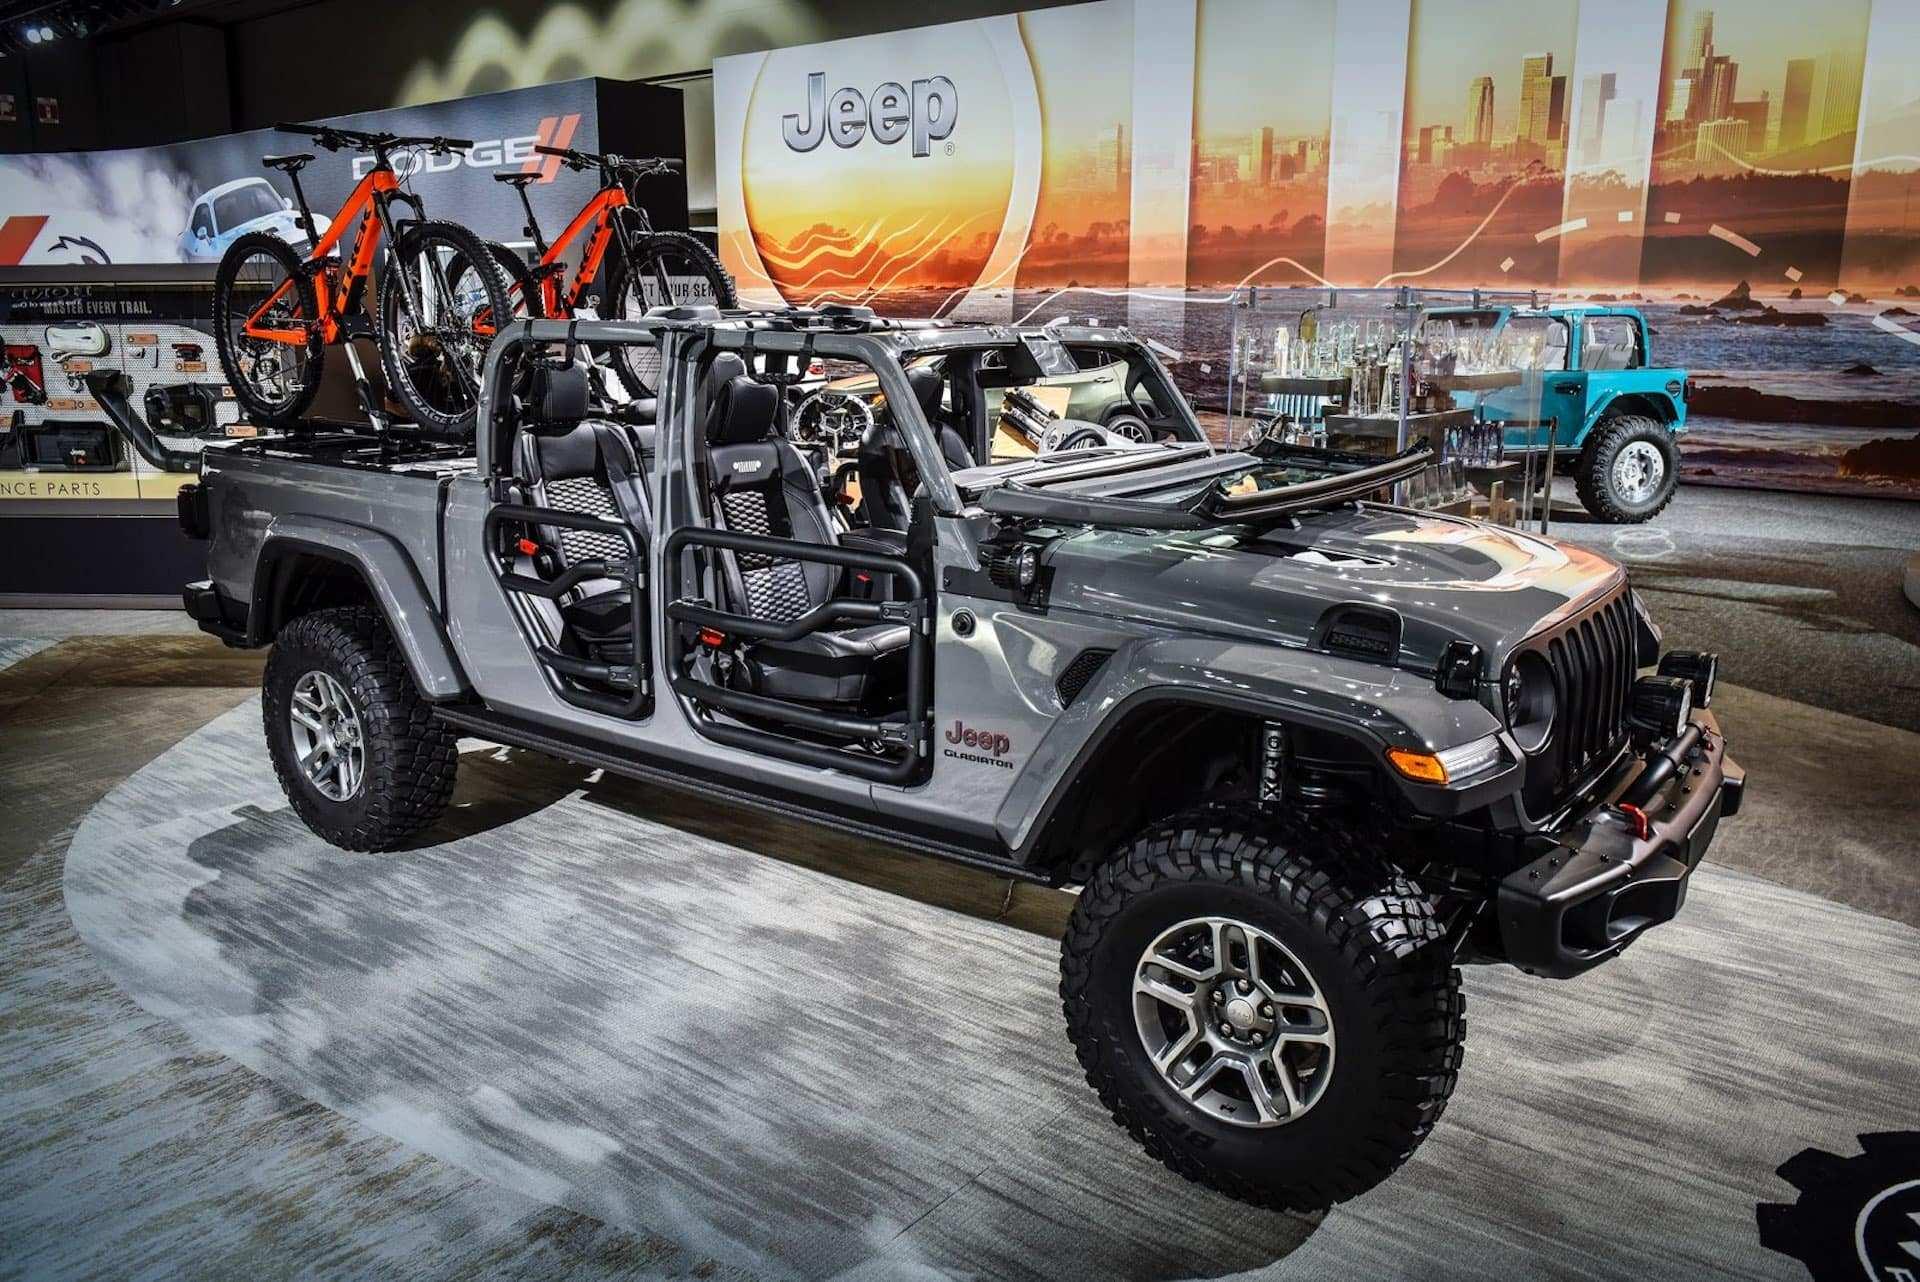 65 Concept of The Jeep Hybrid 2019 Release Date Price with The Jeep Hybrid 2019 Release Date